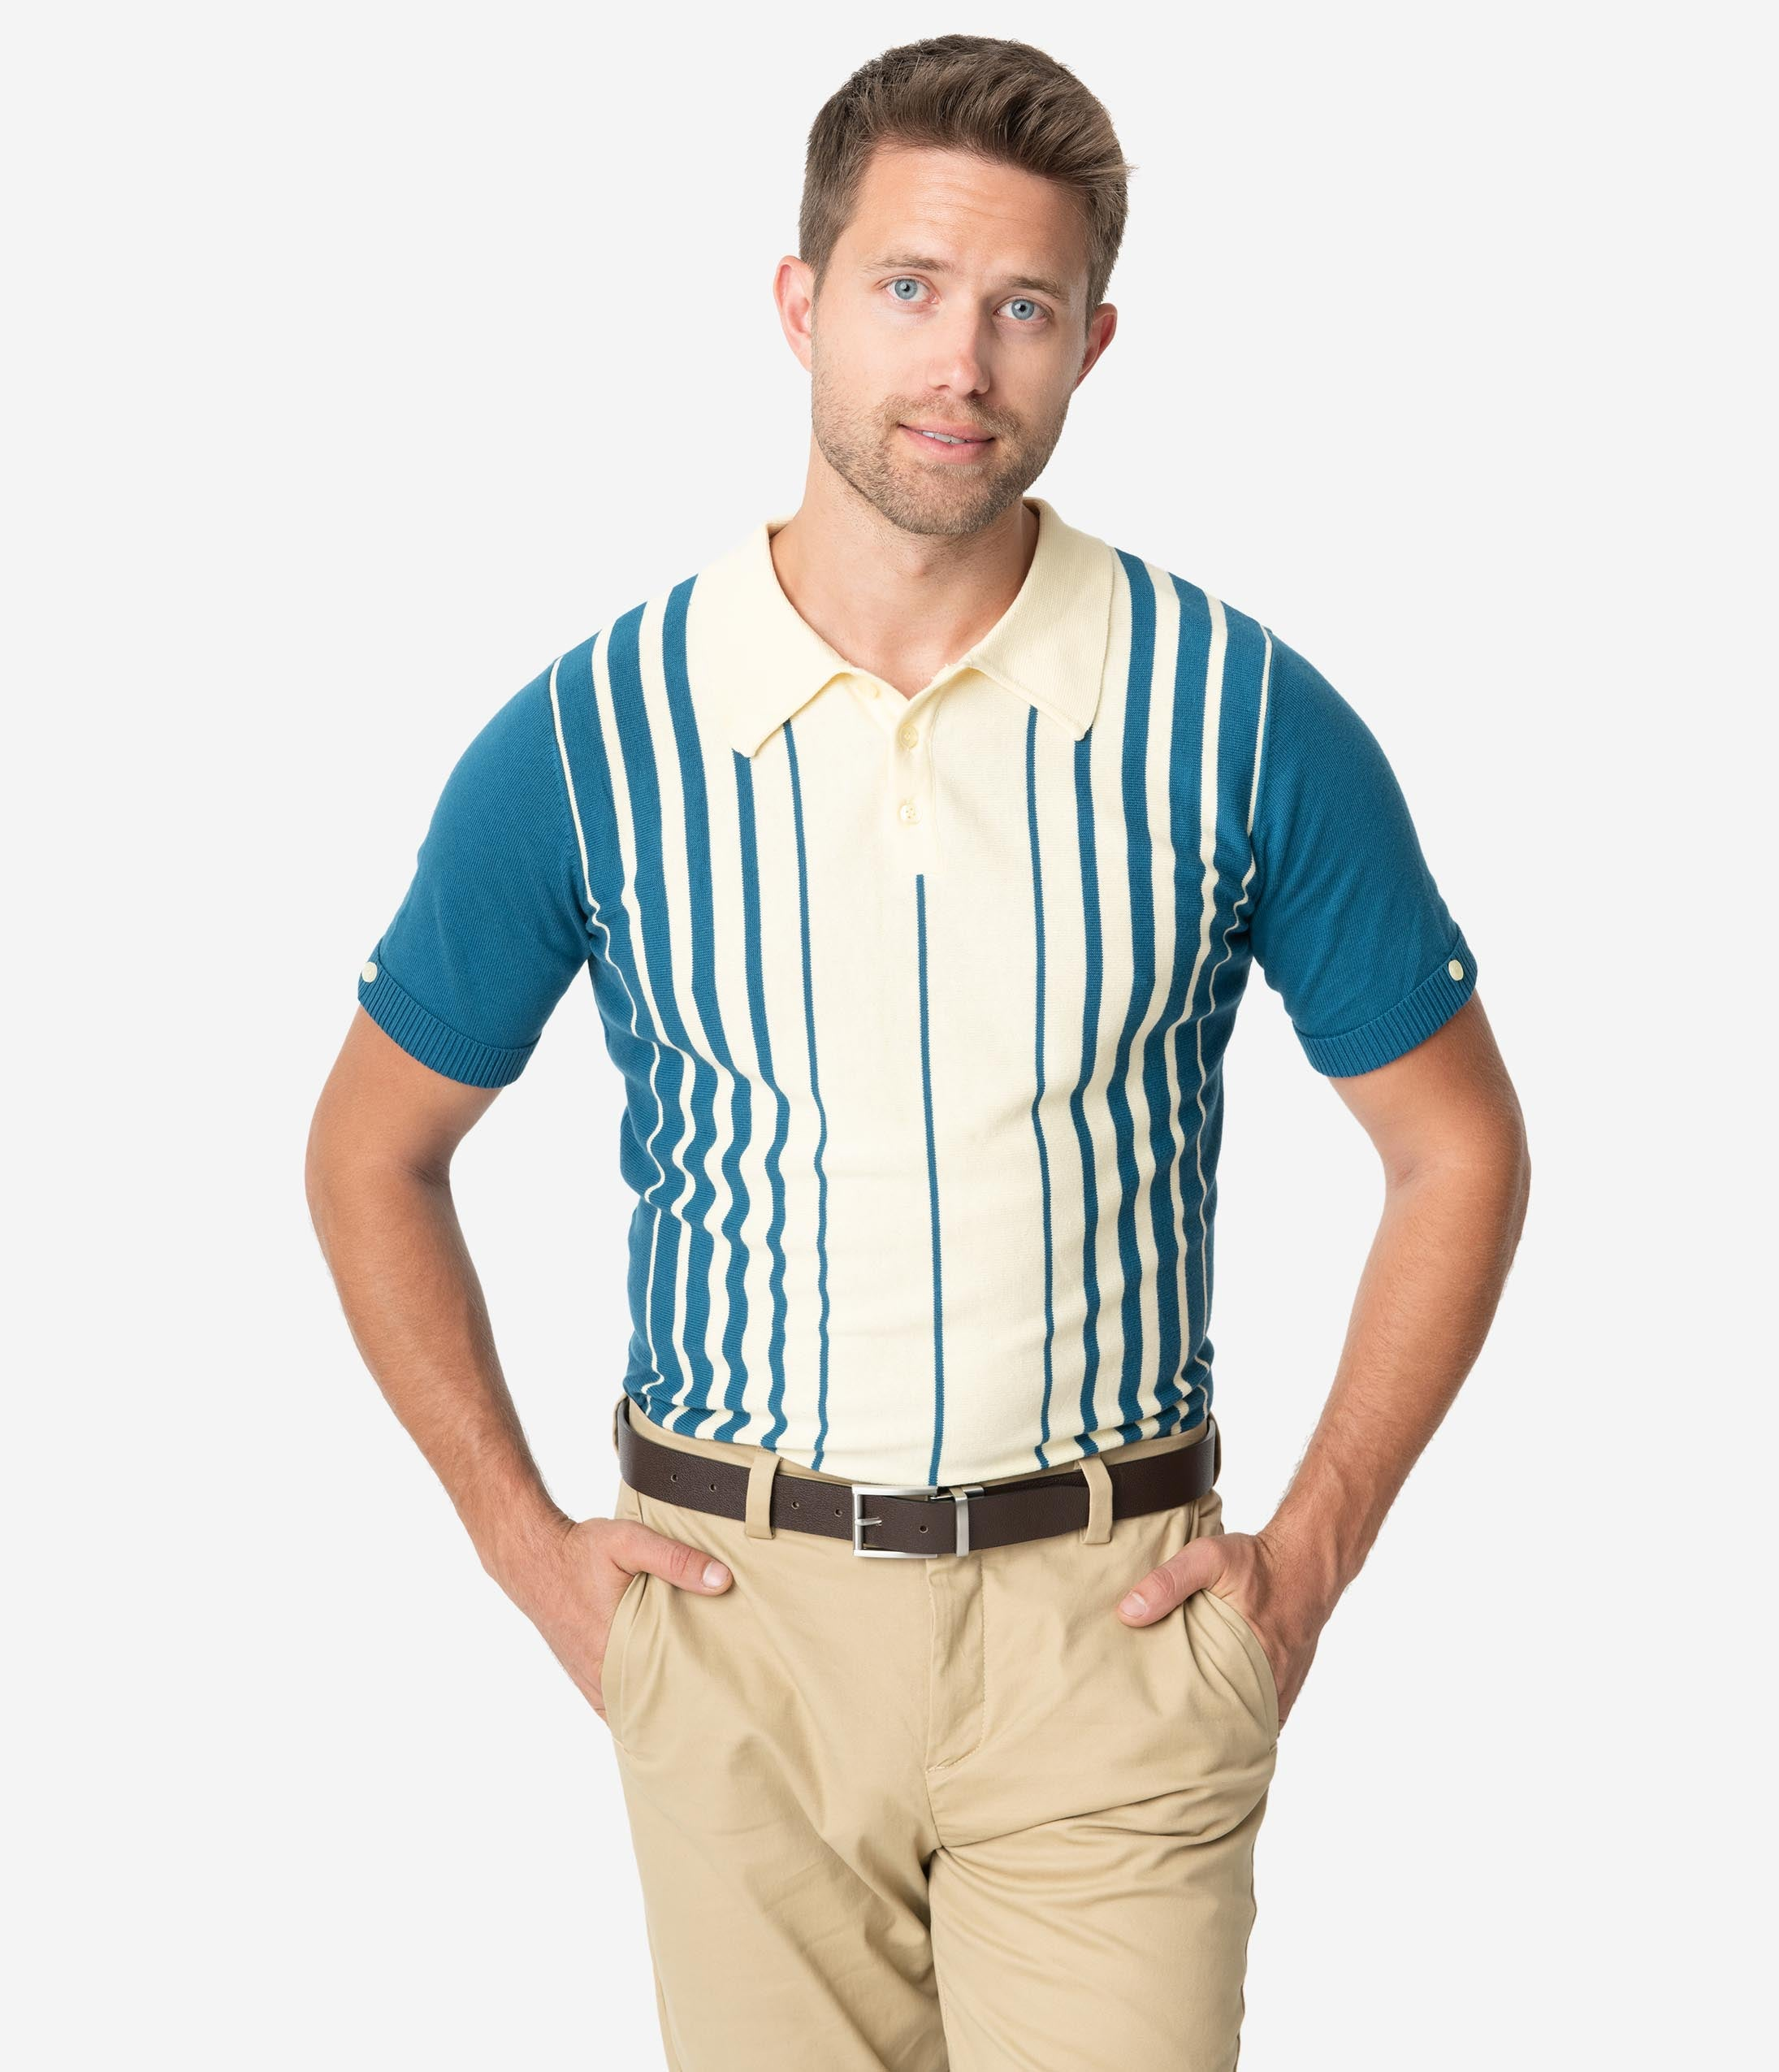 Downton Abbey Men's Fashion Guide Collectif 1960S Blue  Cream Stripe Short Sleeve Knit Pablo Mens Polo Shirt $48.00 AT vintagedancer.com